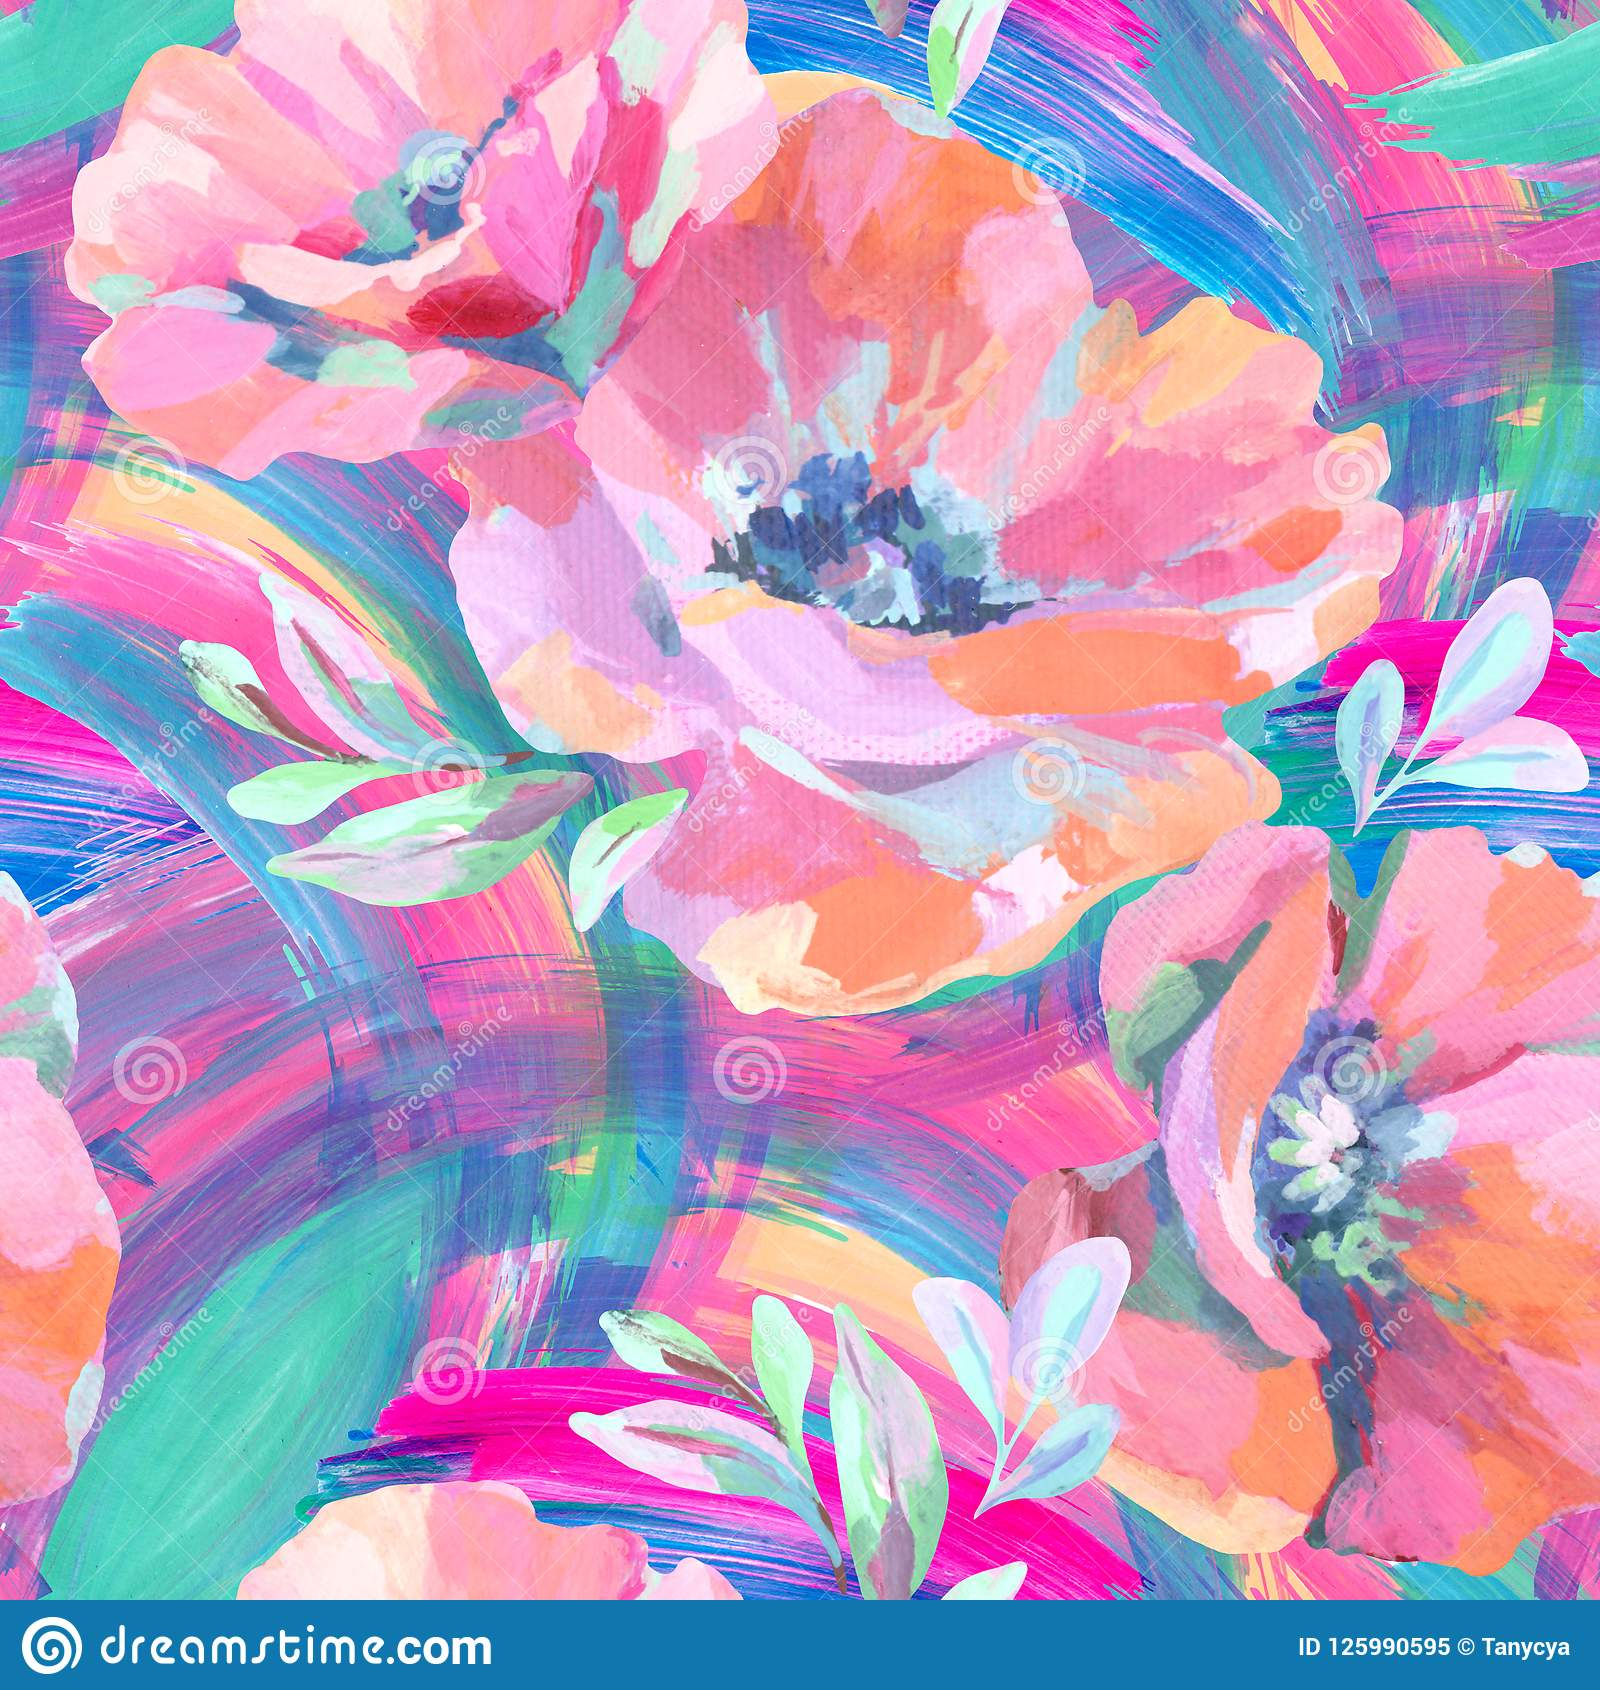 Acrylic Flowers, Leaves, Paint Smears Seamless Pattern